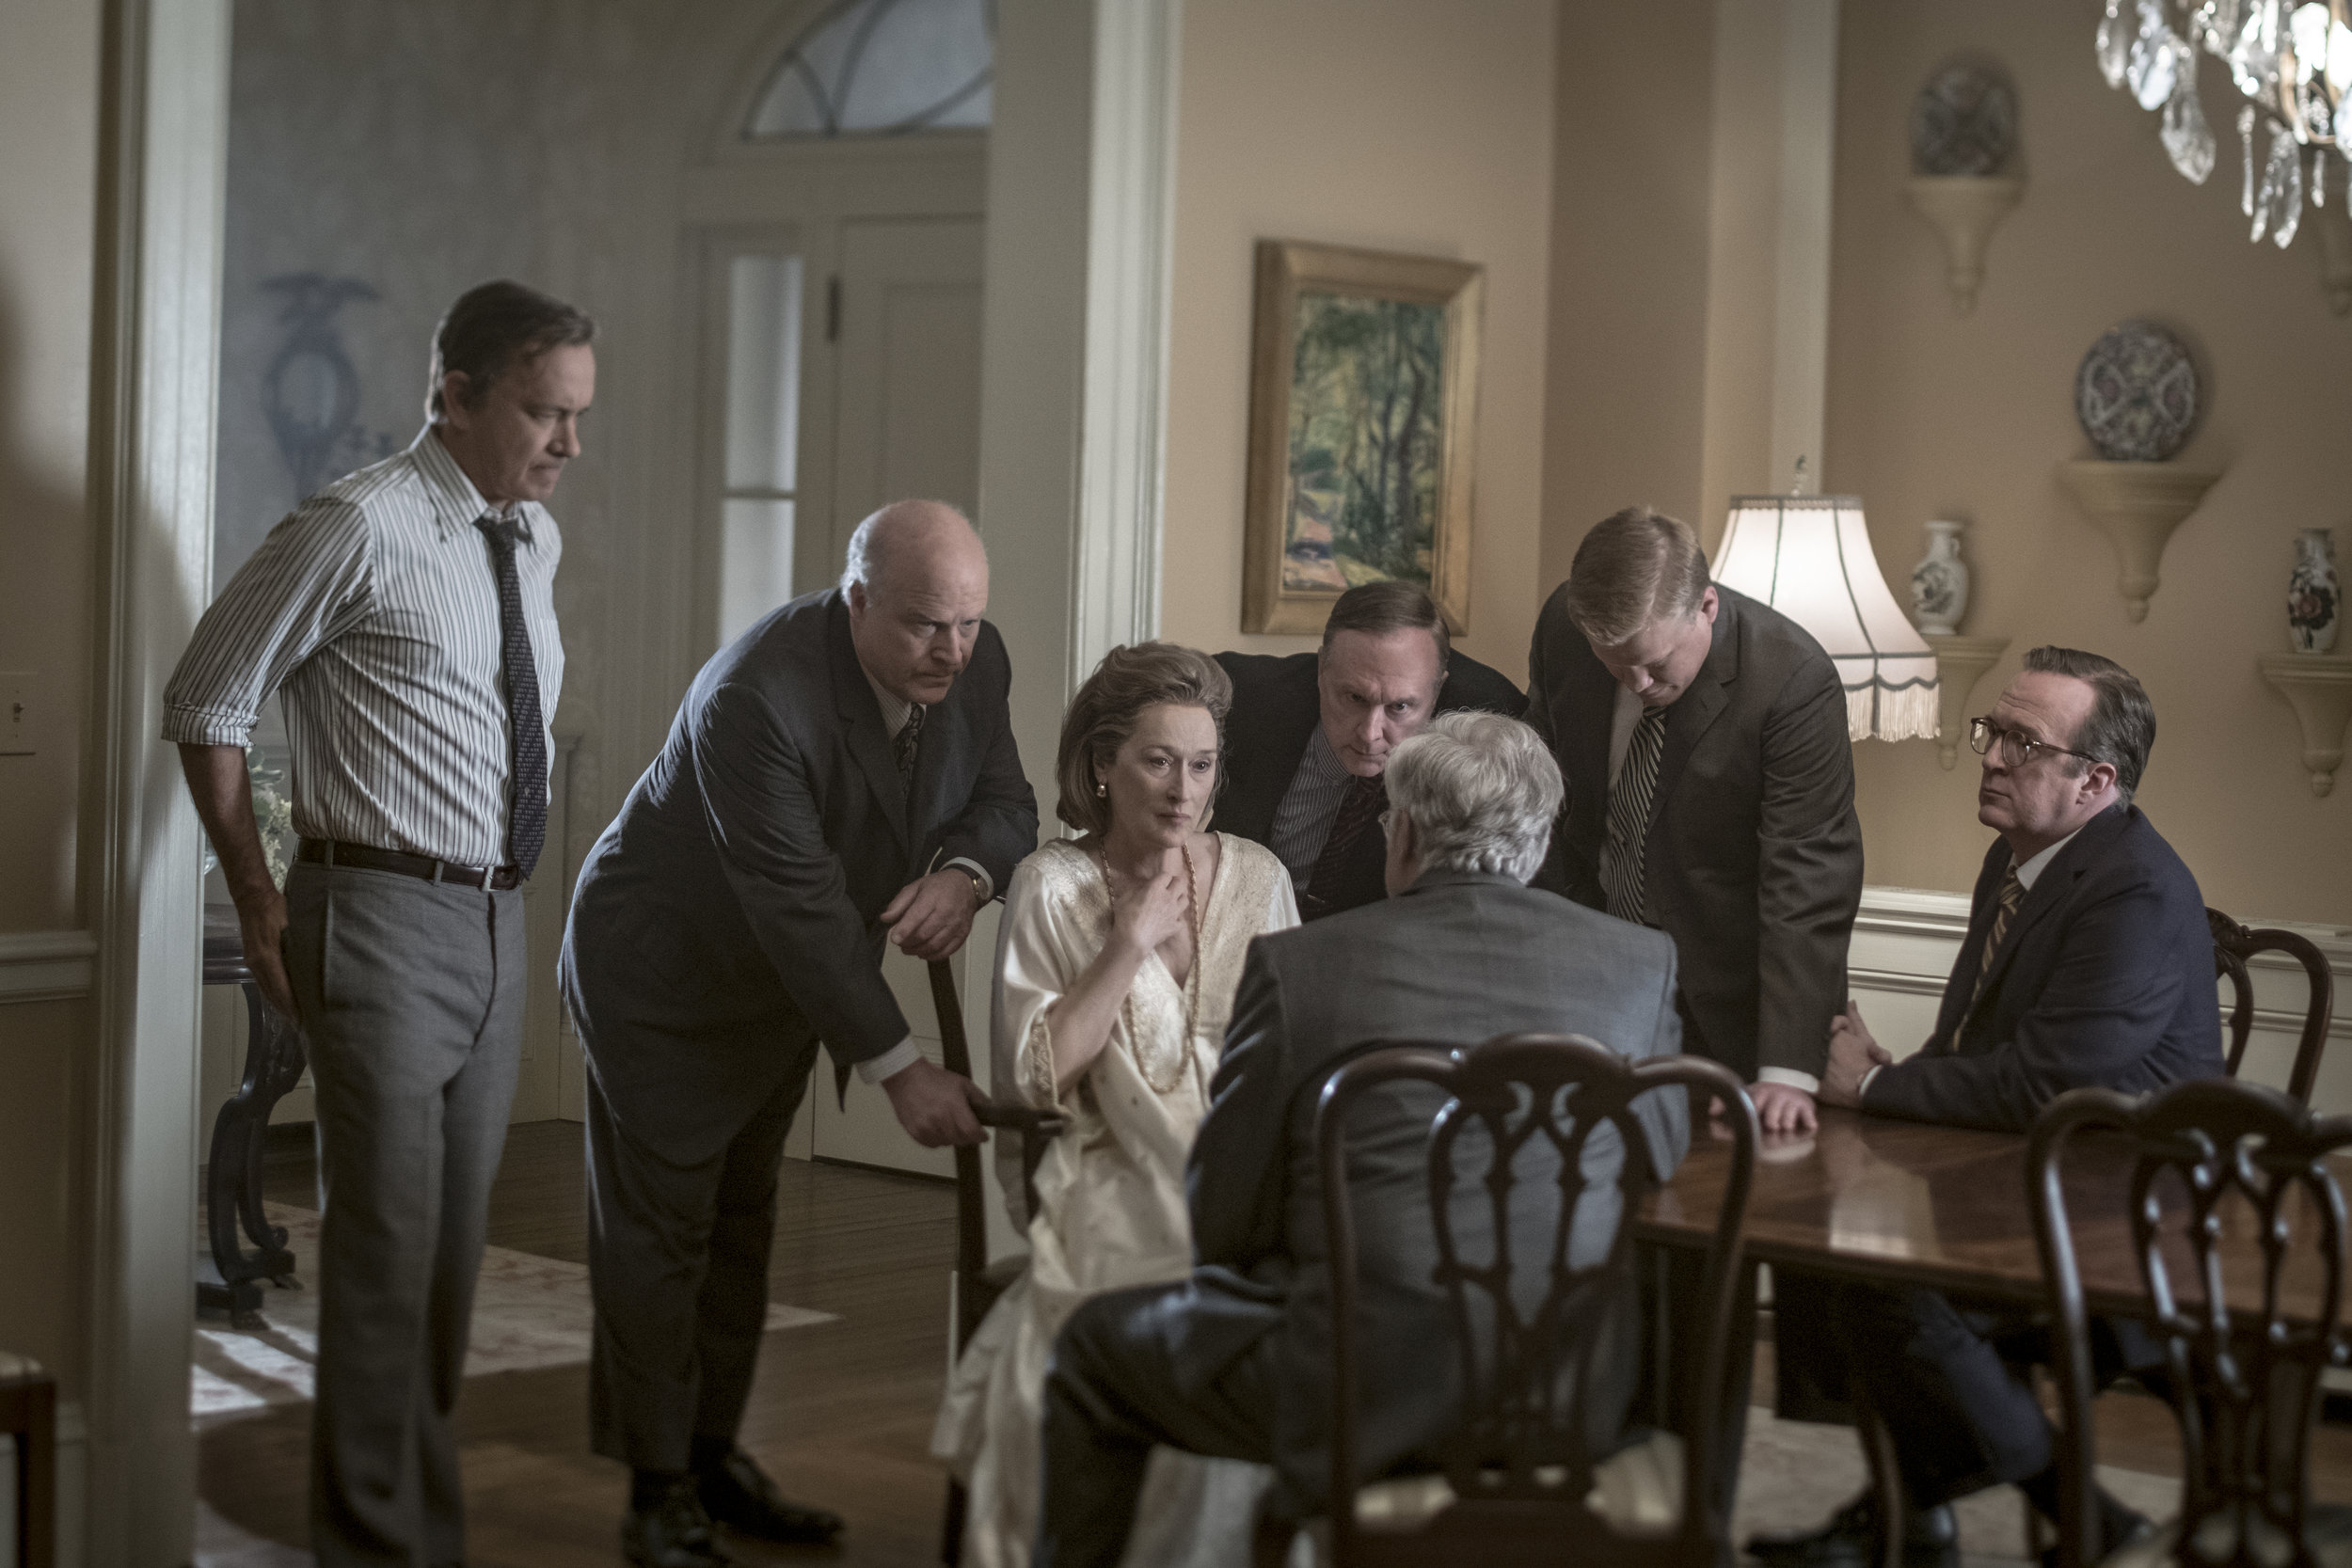 Meryl Streep as Kay Graham, a woman with the ultimate decision-making power, surrounded by her male colleagues. Credit: E One